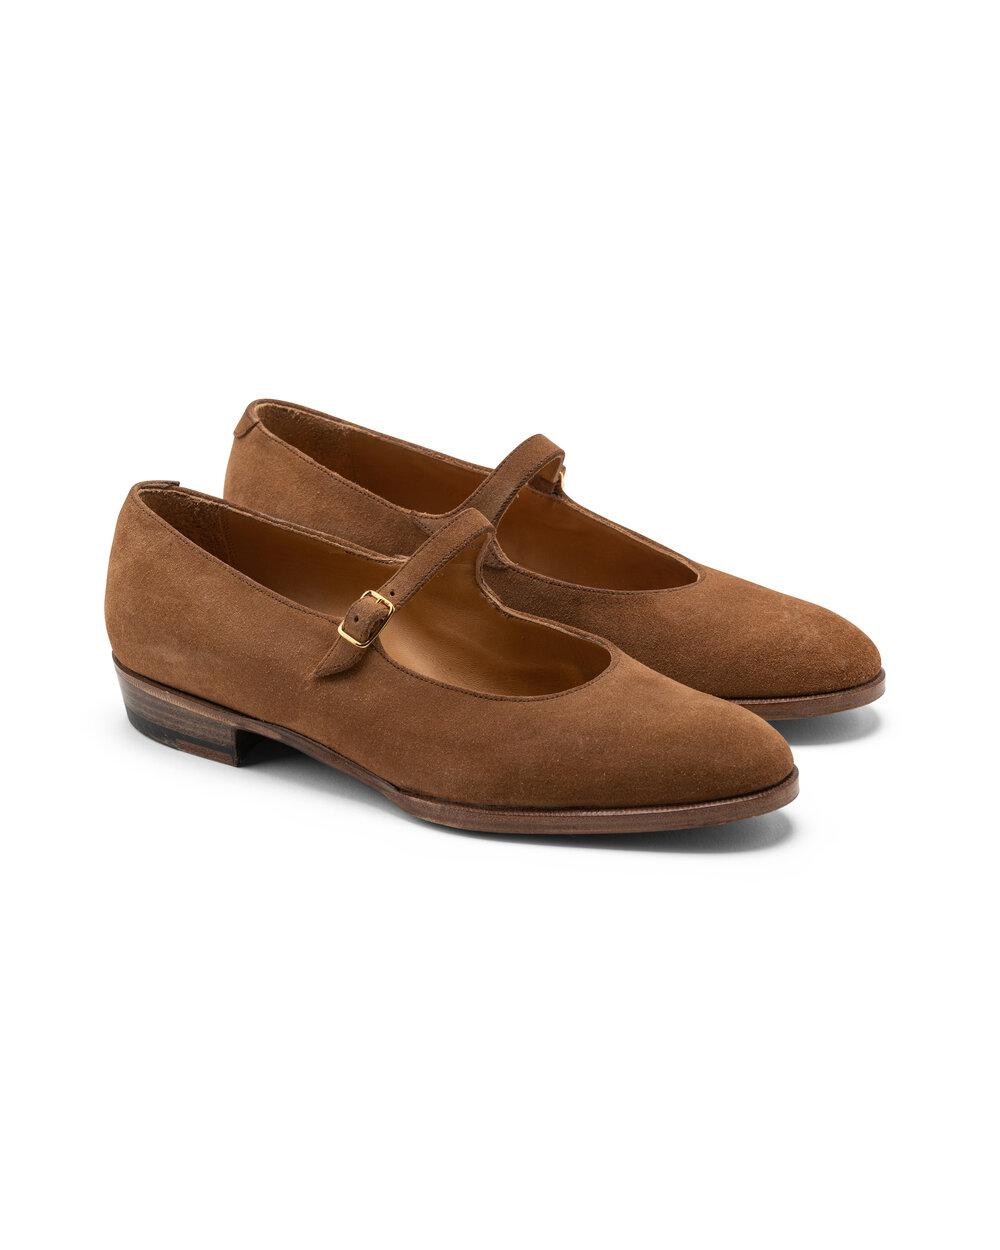 ODPEssentials Classic Mary Jane - Tan Suede 1